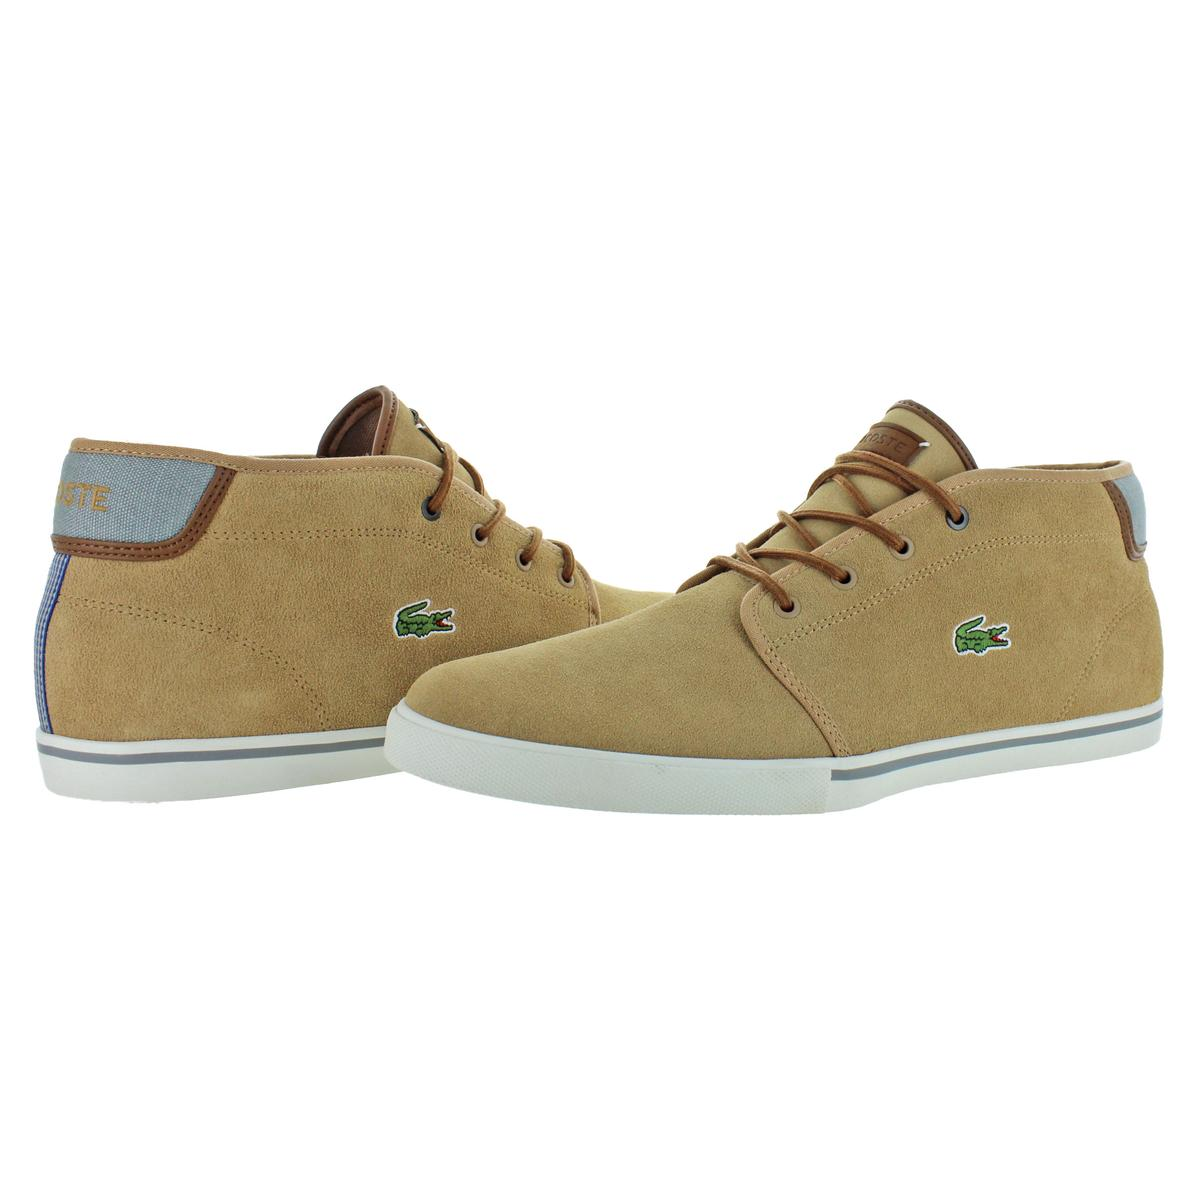 Lacoste-Men-039-s-Ampthill-Leather-Chukka-Mid-Top-Fashion-Sneakers-Shoes thumbnail 9